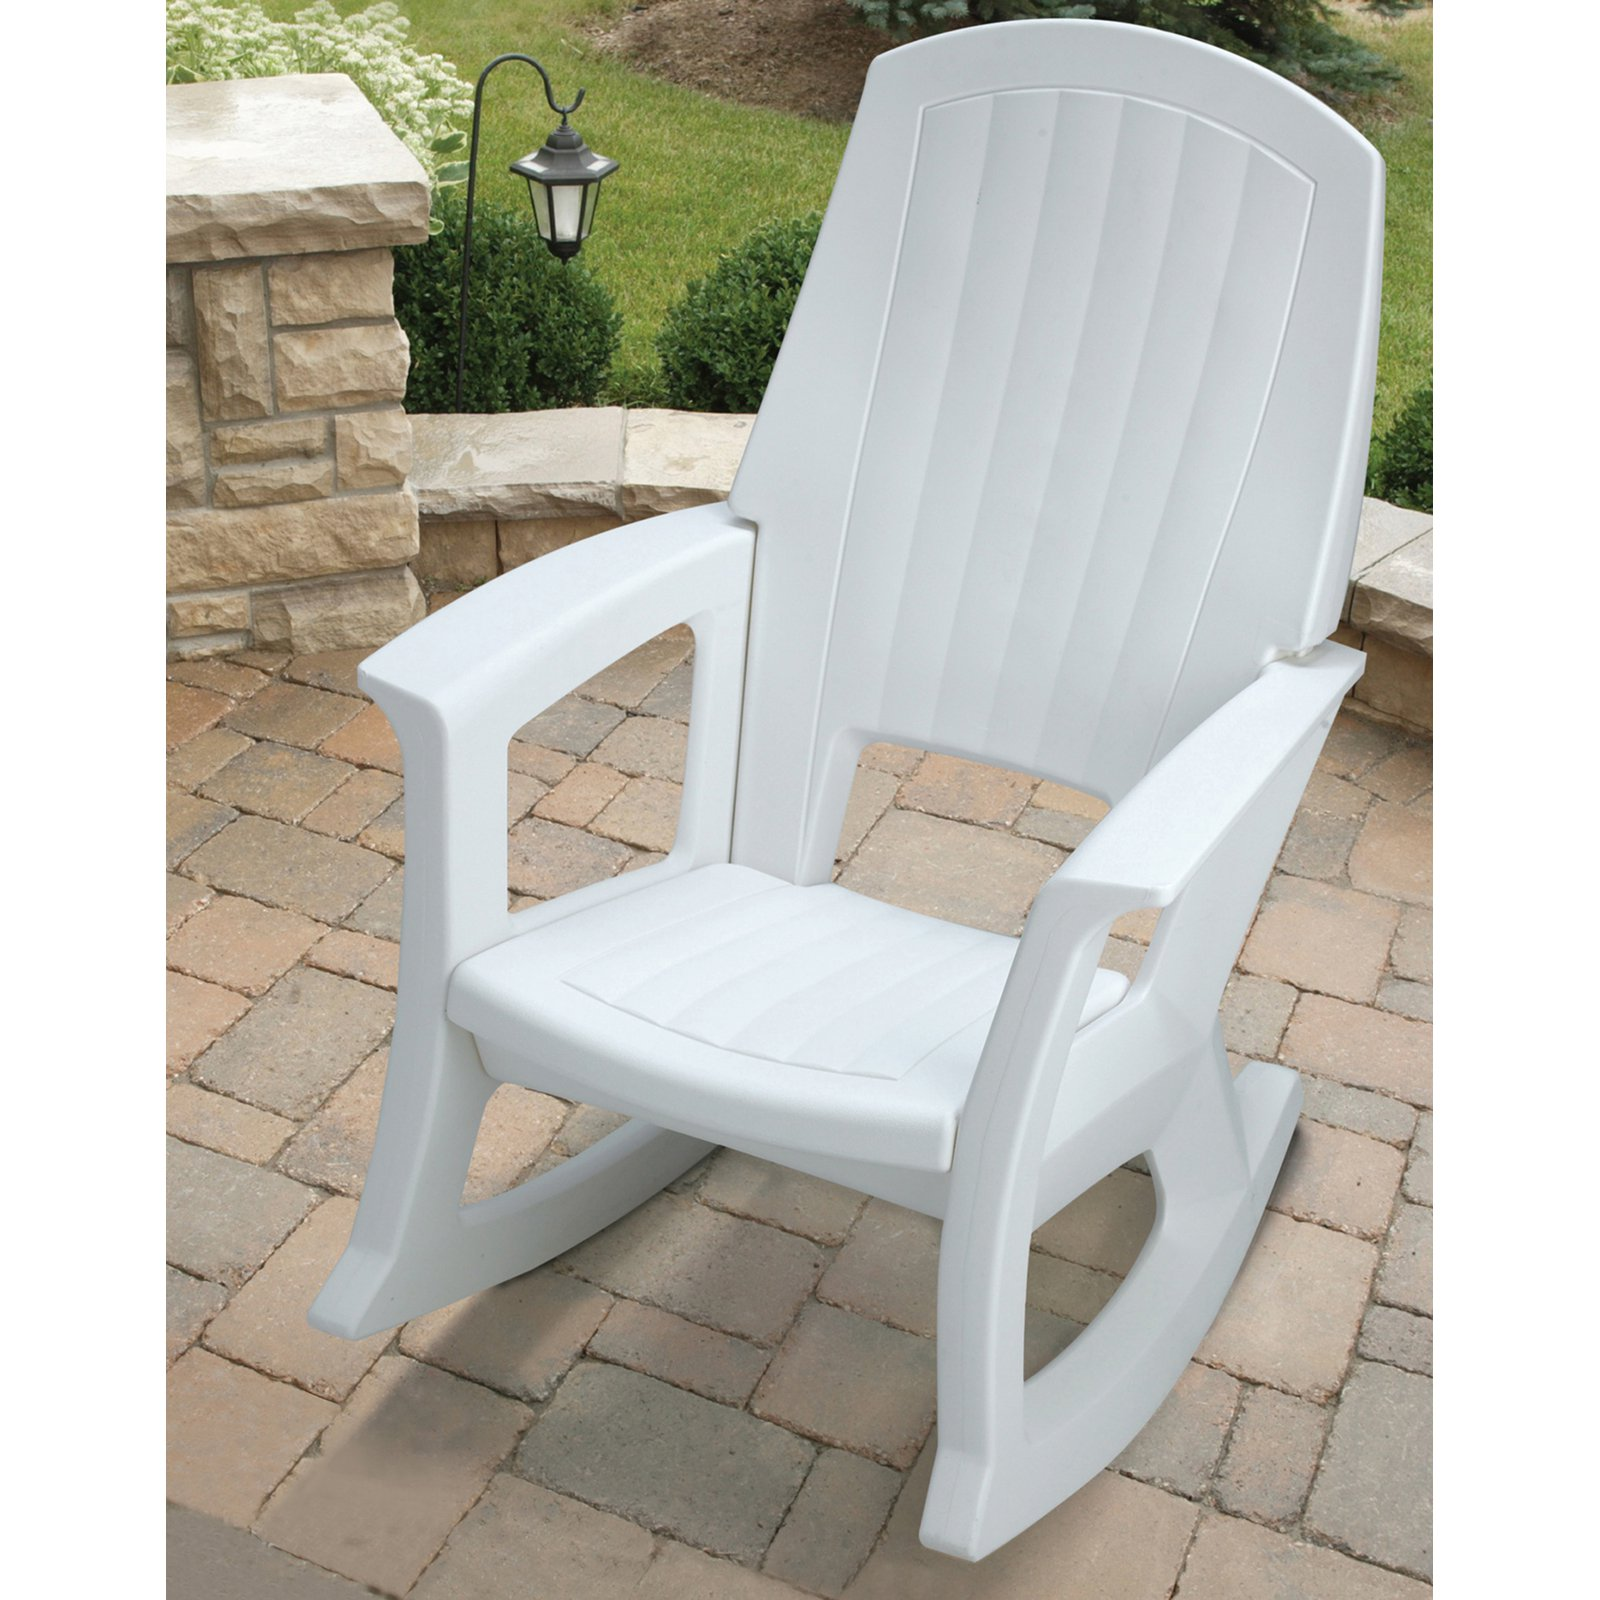 Best Semco Recycled Plastic Rocking Chair - Outdoor Rocking Chairs at Hayneedle plastic rocking chair